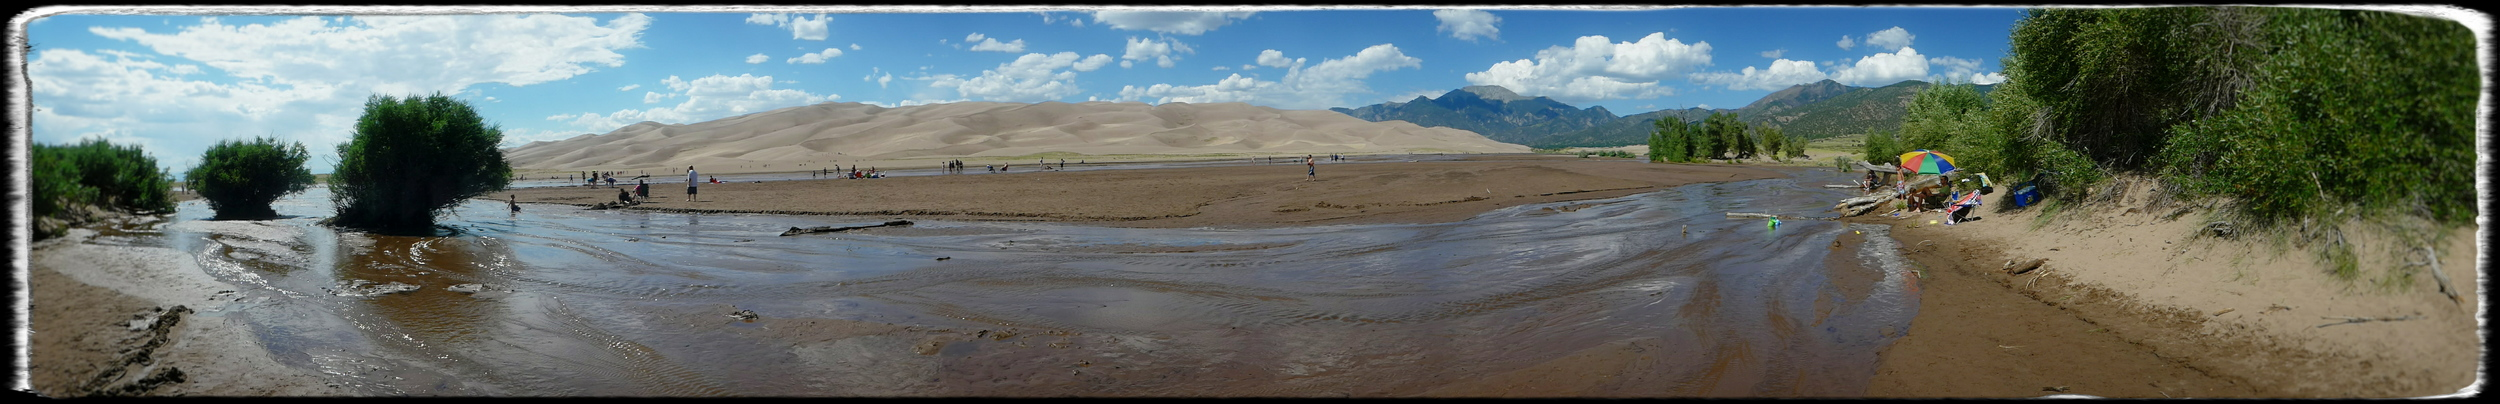 Many visitors to Great Sand Dunes NP don't go much farther past Medano Creek, which lies seasonally at the base of the dunes.